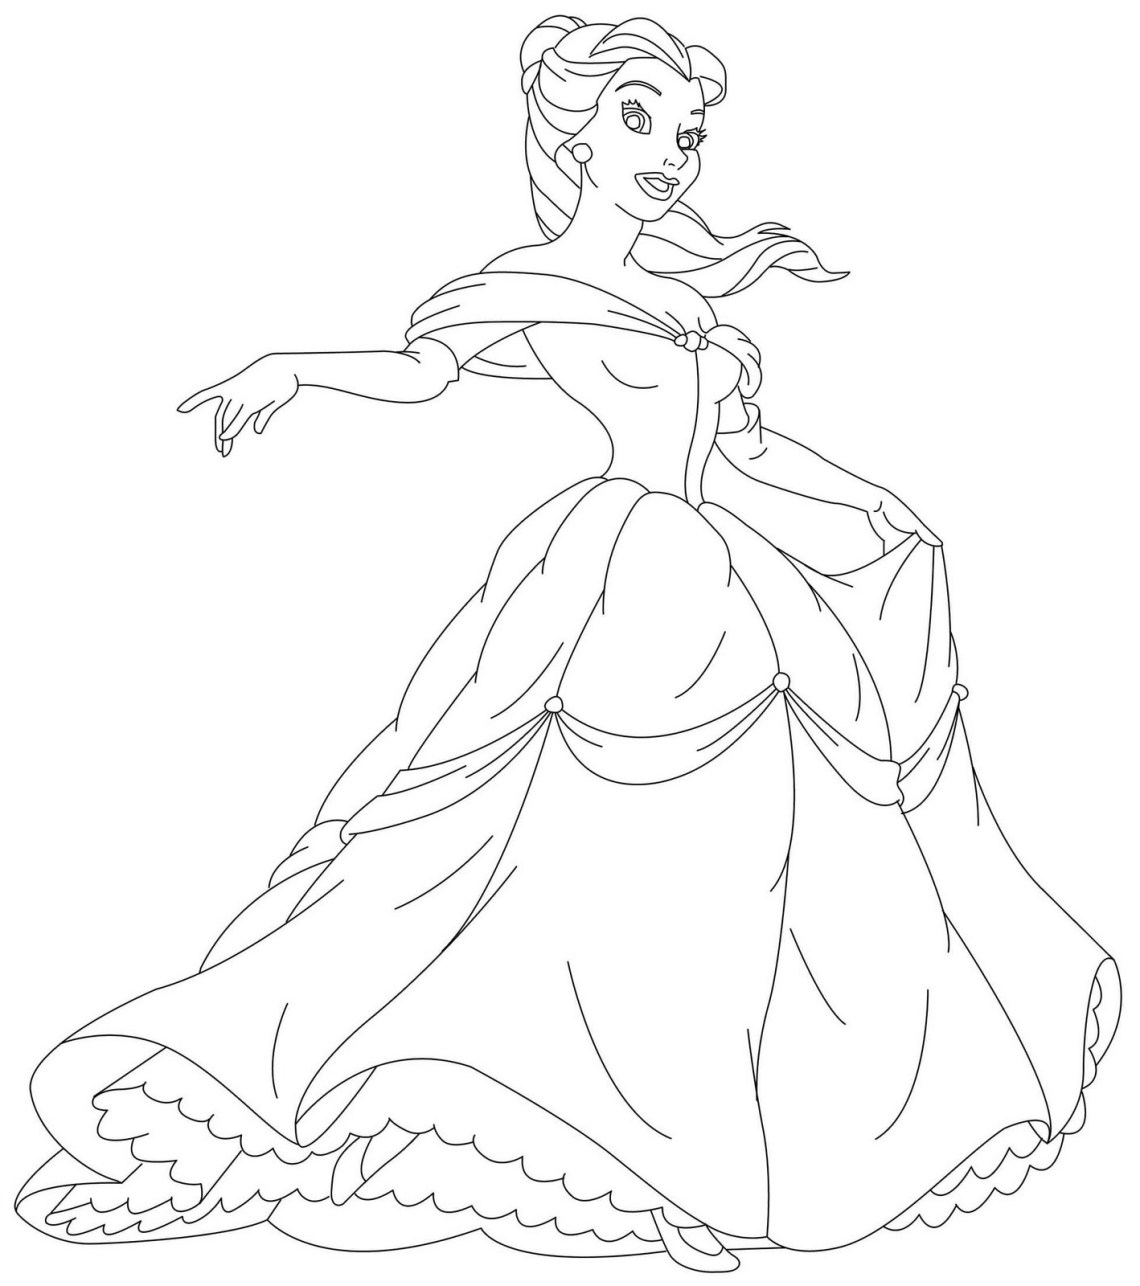 Disney Princesses Coloring Pages - Kidsuki | free colouring pages disney princesses